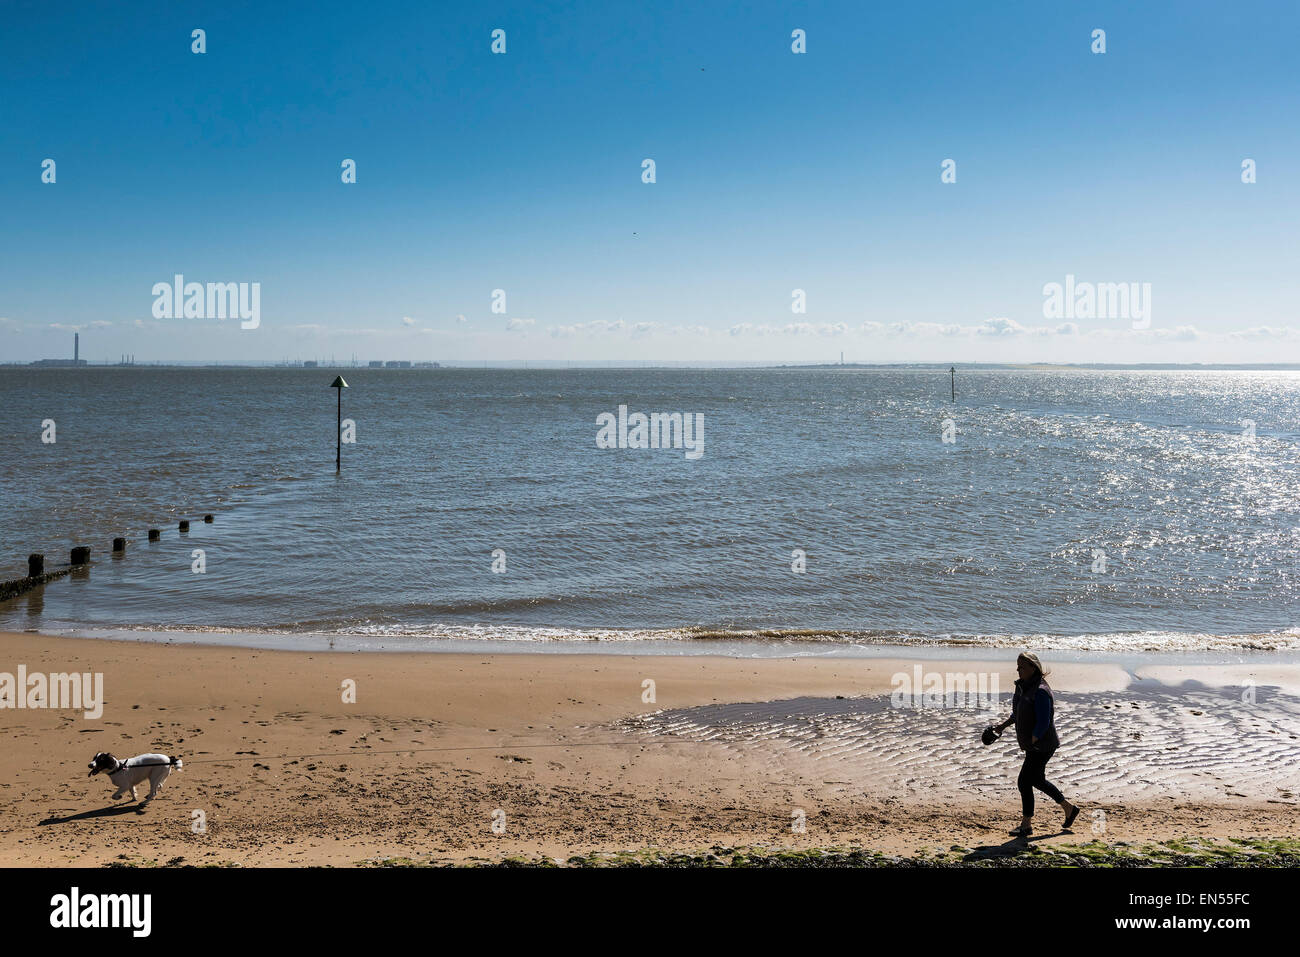 A dog walker on a beach in Southend, Essex. Stock Photo